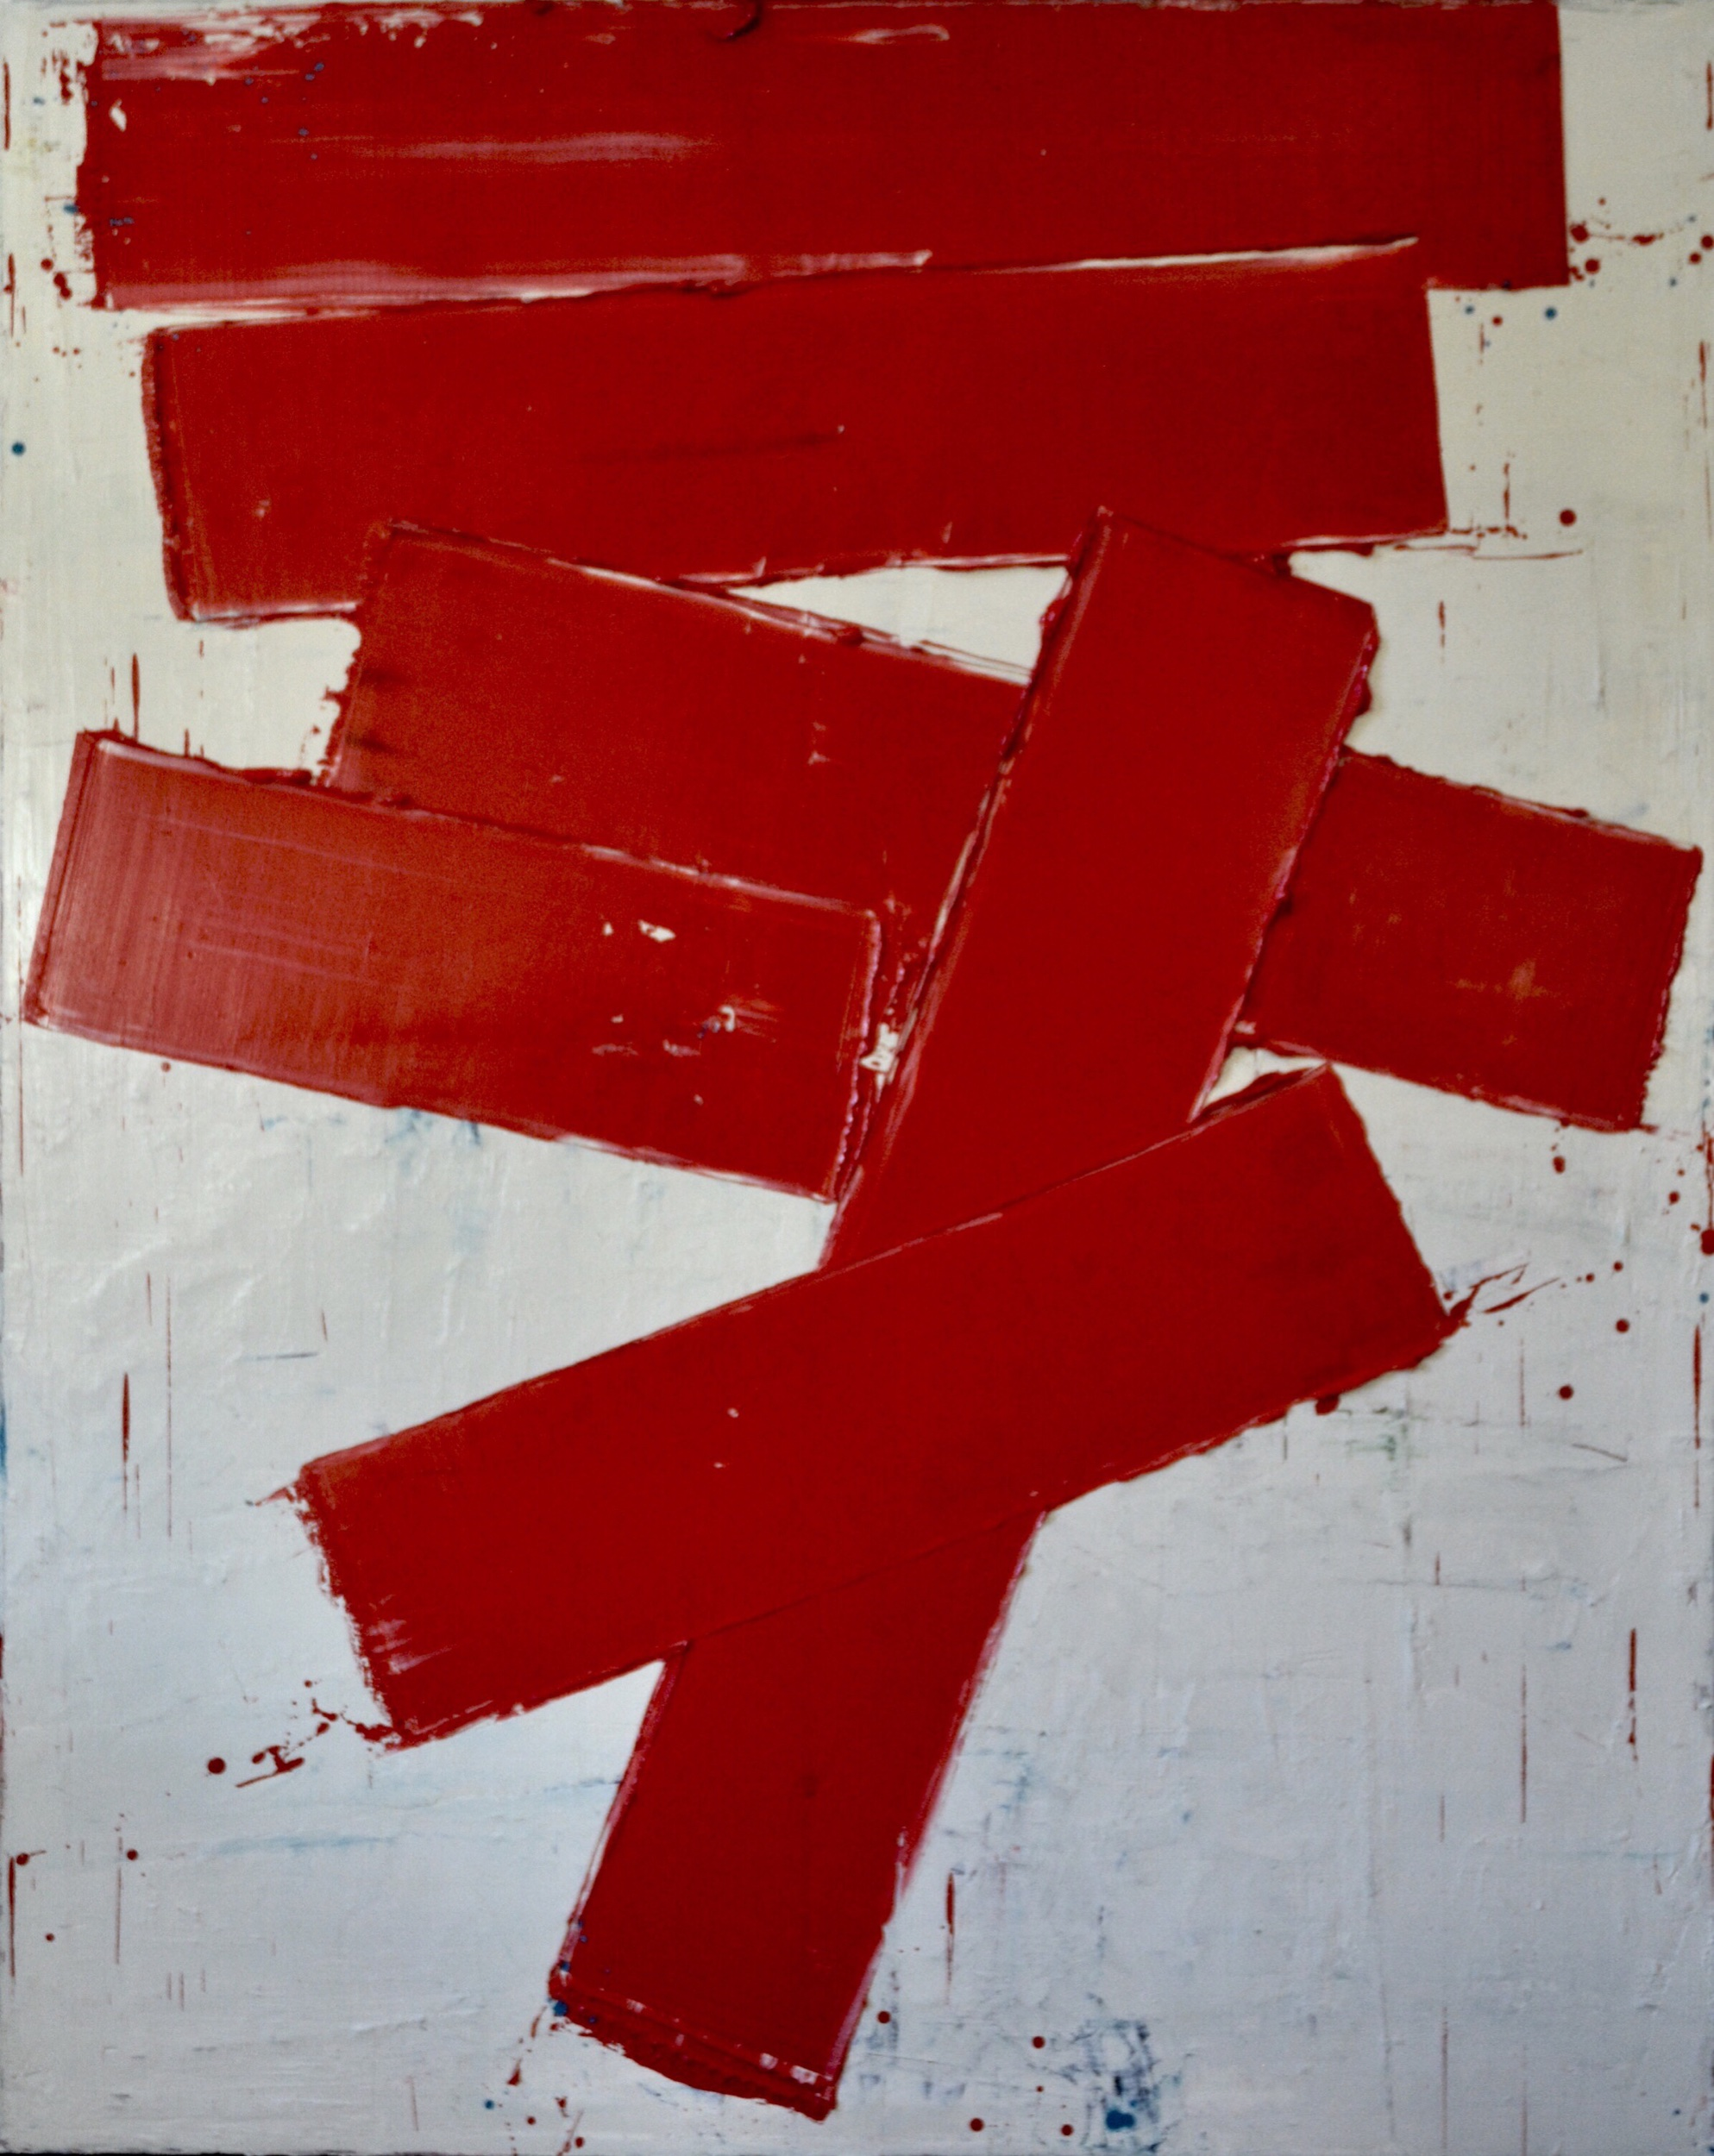 Red Timbers, 150cm by 120cm, Oil on canvas